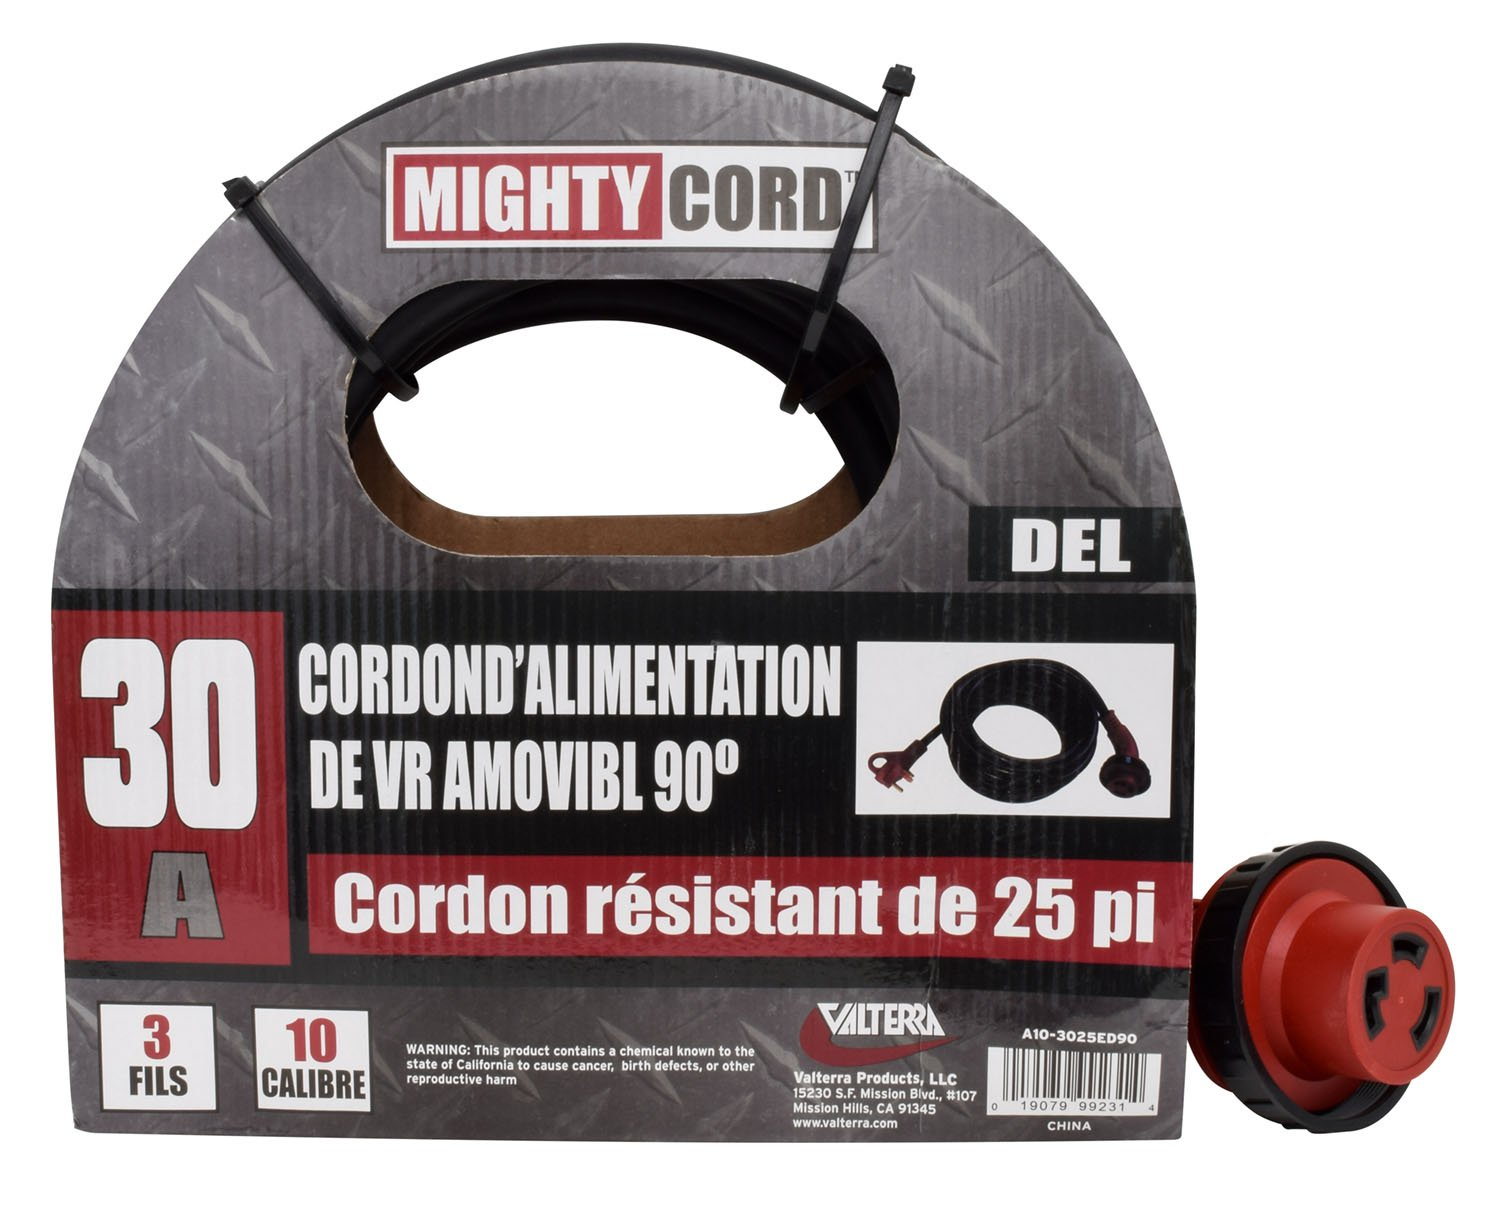 Red Valterra Mighty Cord/® RV 30-Amp 90-Degree Detachable Power Cord 25-Foot Cord for RV